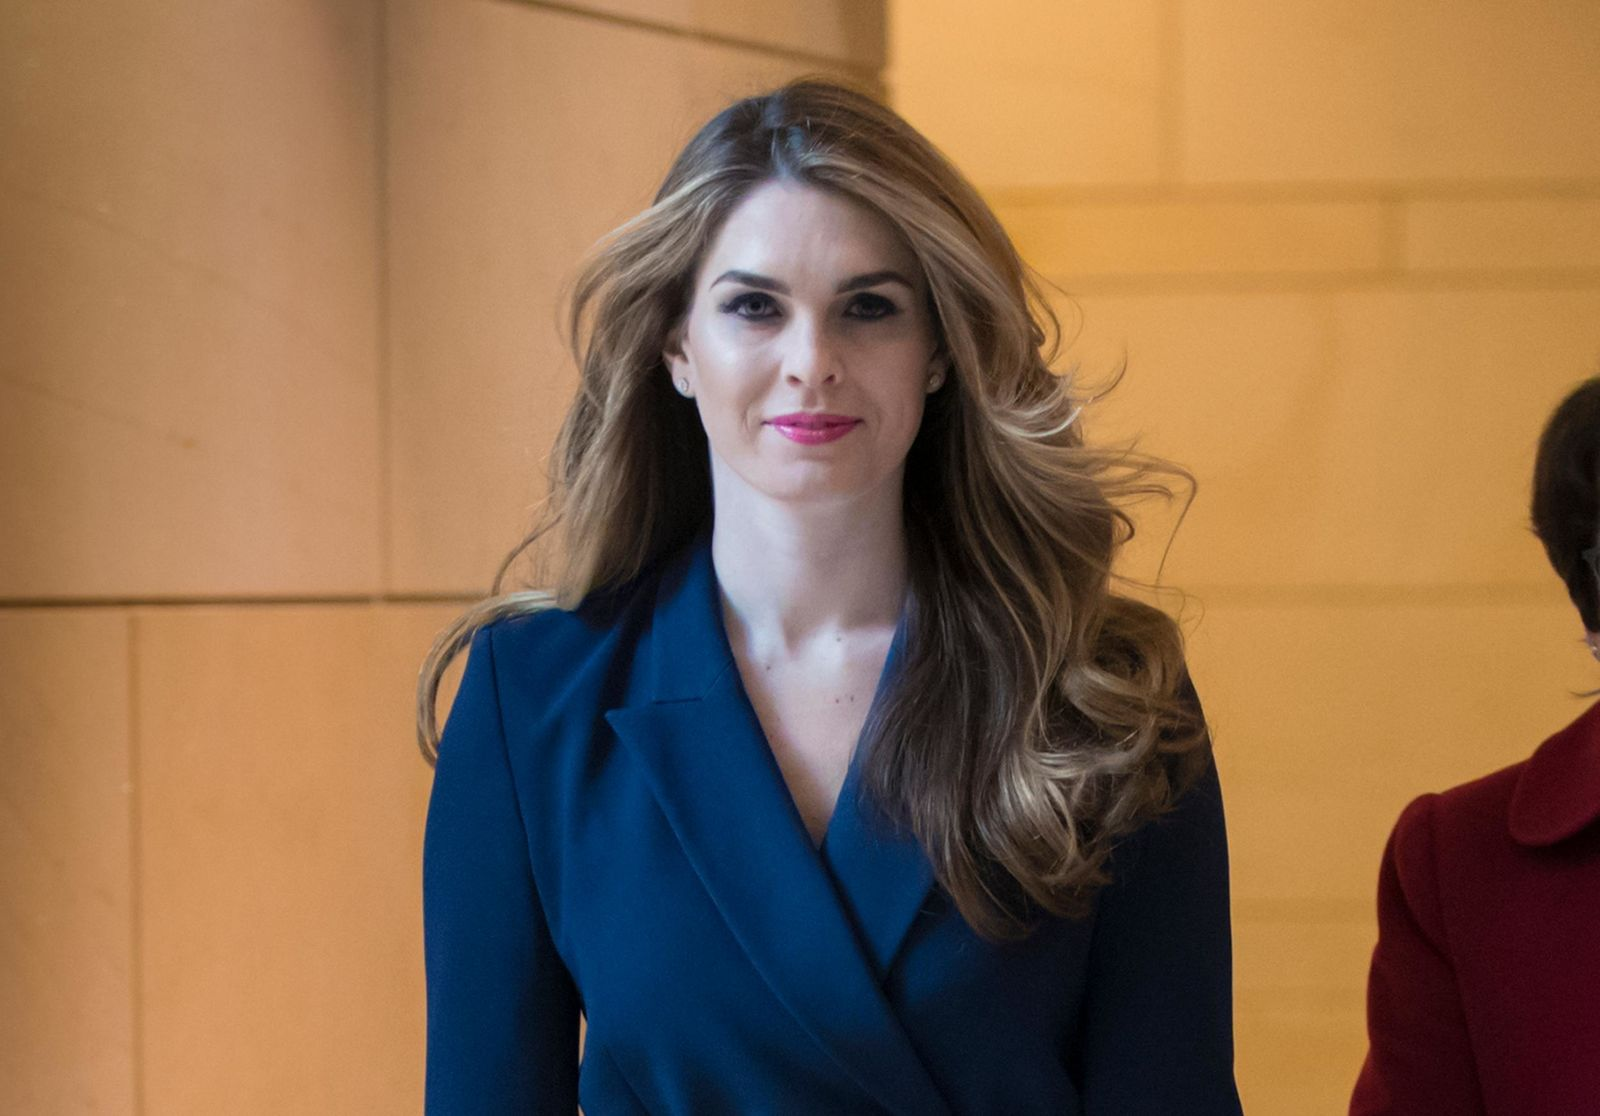 FILE - In this Feb. 27, 2018 photo, then-White House Communications Director Hope Hicks arrives to meet behind closed doors with the House Intelligence Committee, at the Capitol in Washington.{ } (AP Photo/J. Scott Applewhite, File)